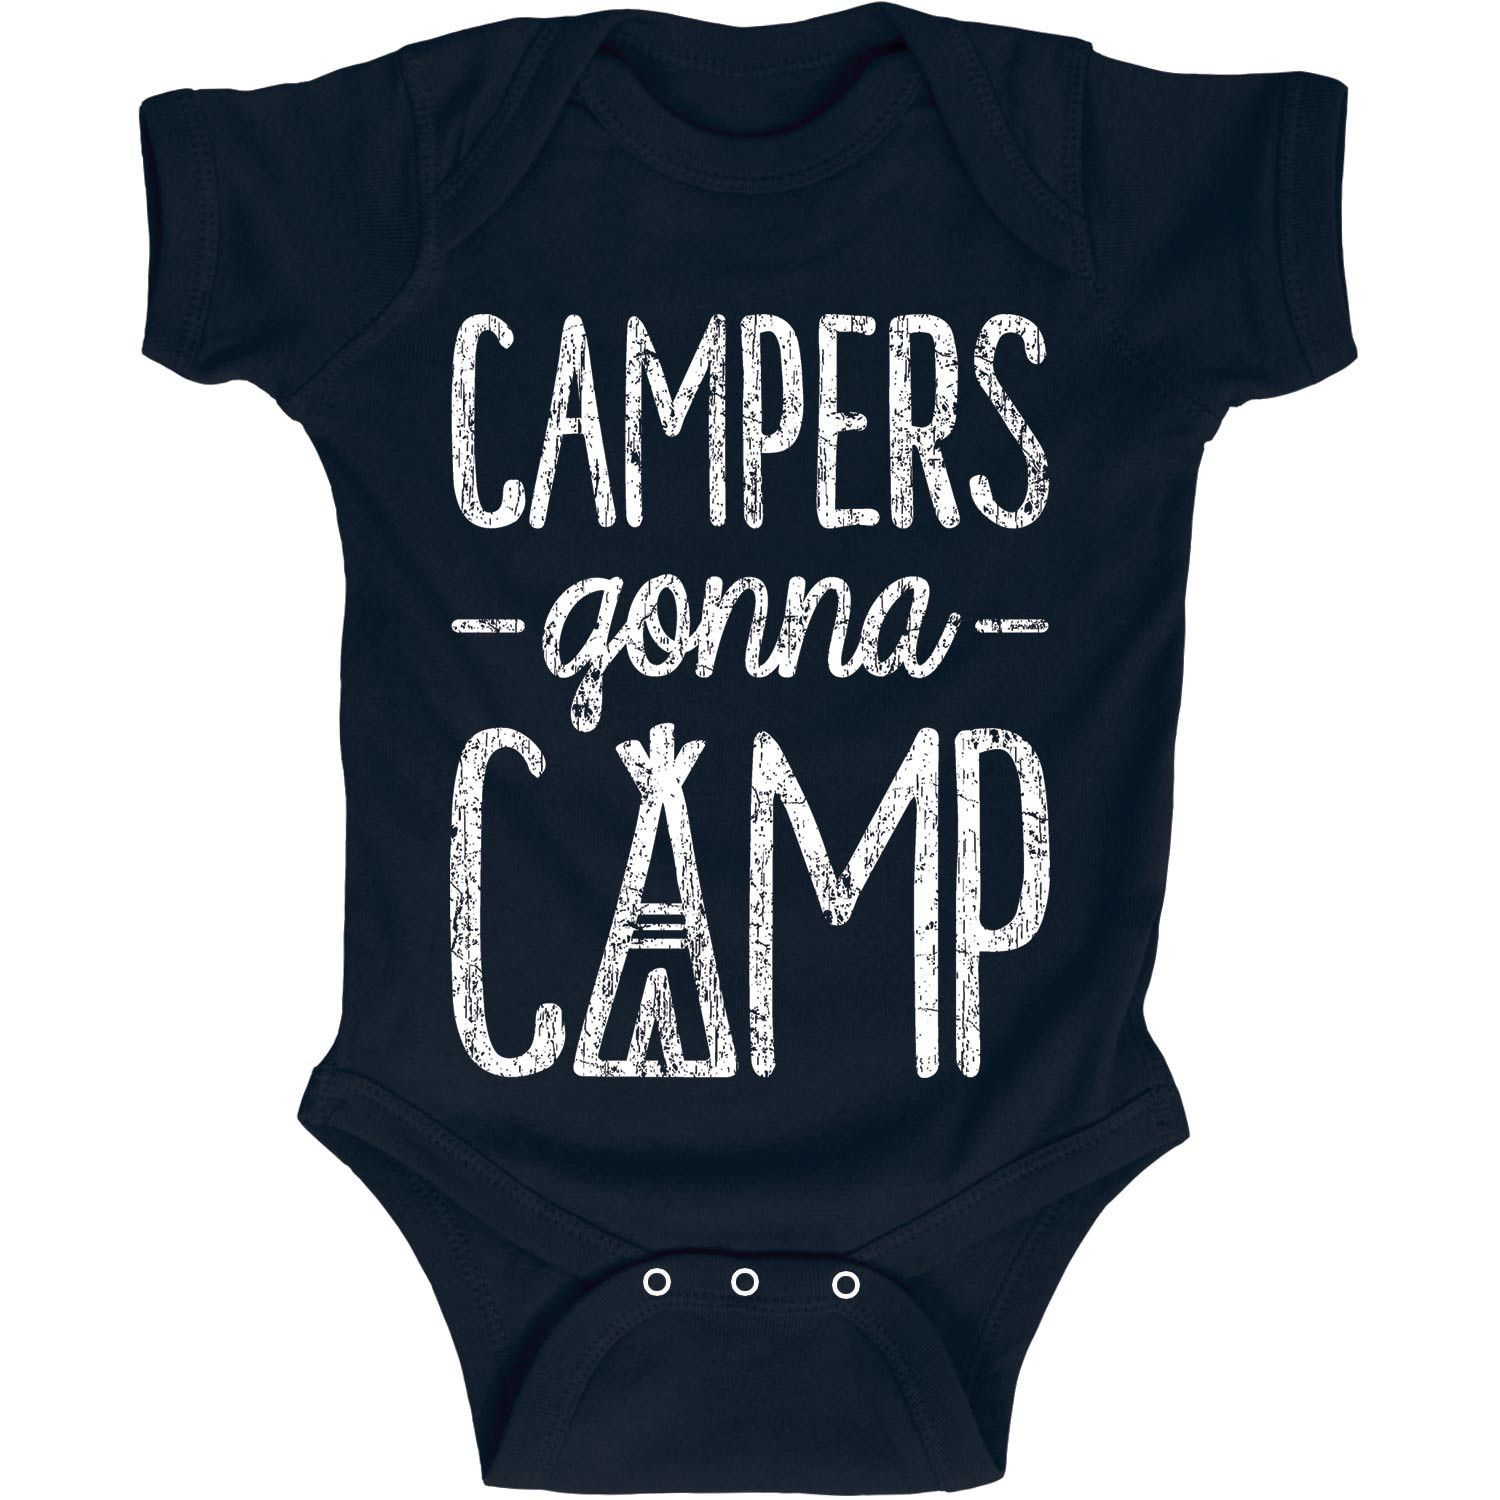 Here's a cool camping idea. Camping shirts for the kids on your next trip! Campers Gonna Camp Infant One Piece Baby Onesie. #campingshirts #camping